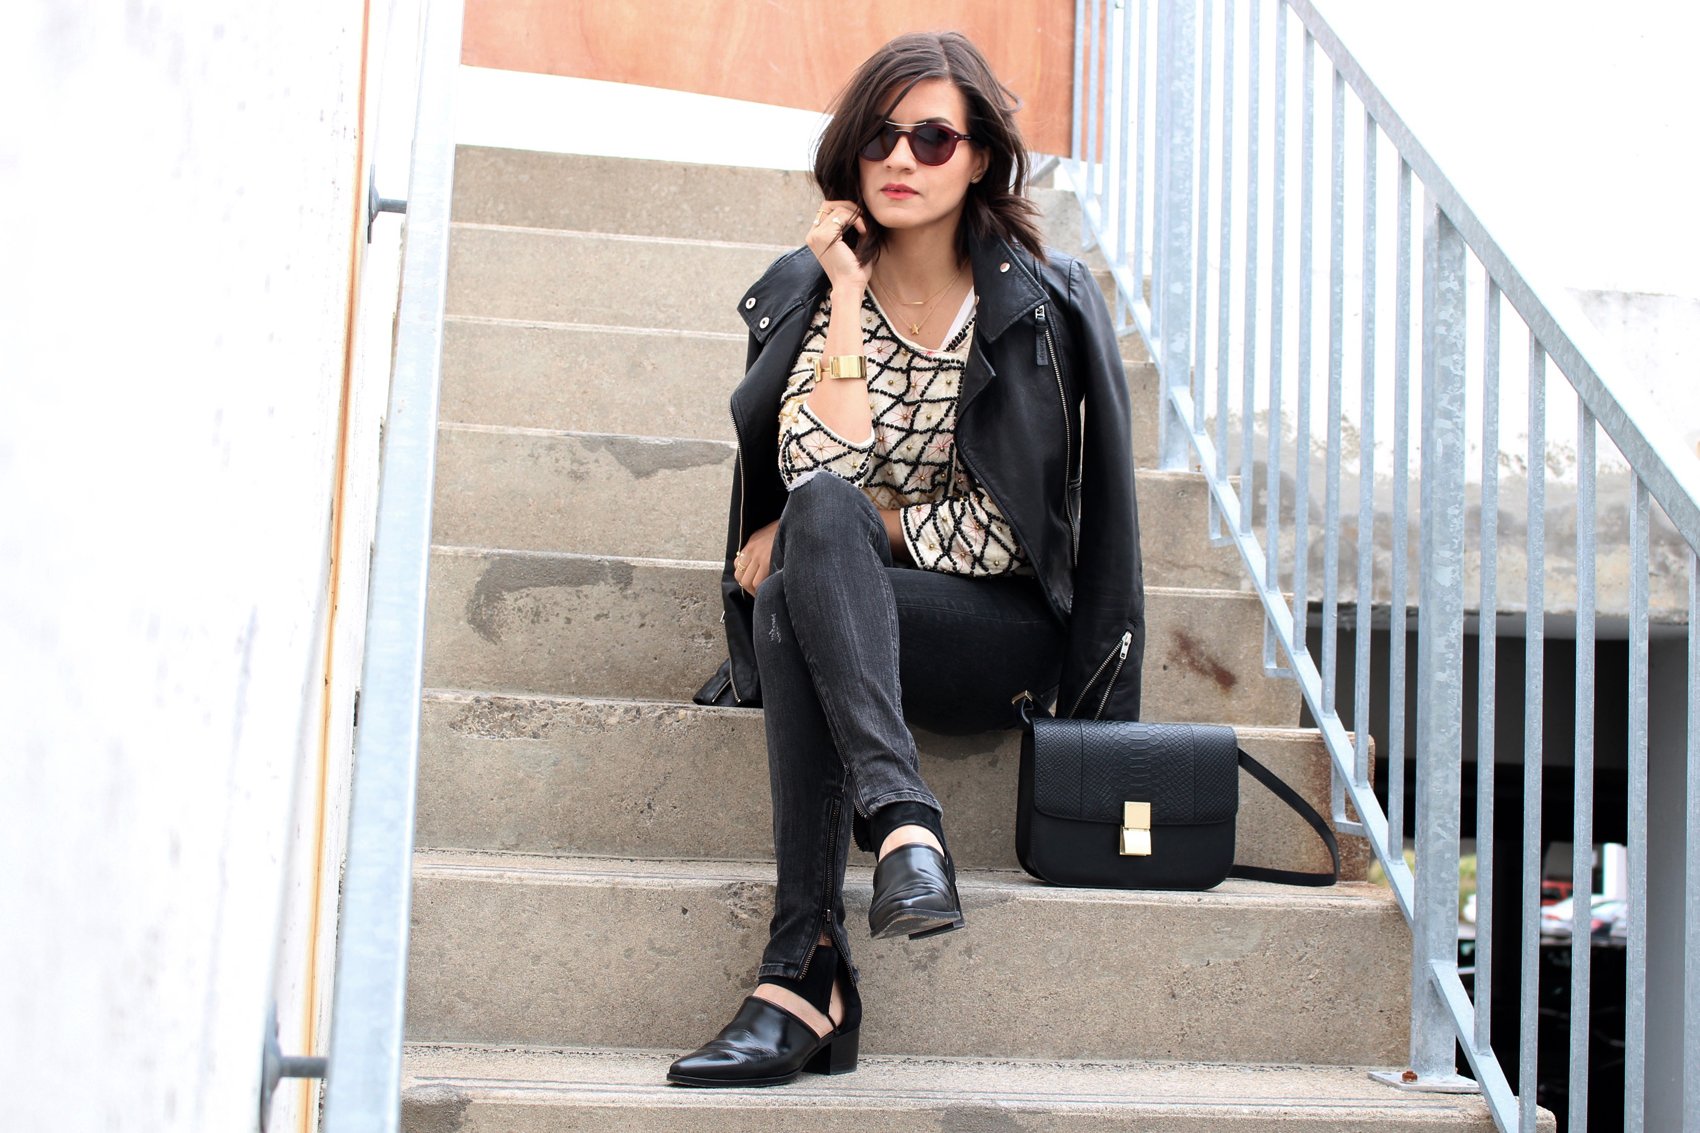 WoahStyle.com_Rag and Bone skinny distressed moto jeans_Free People beaded jacket_Mackage leather jacket_Alexander Wang ankle boots_JCOS box bag_Layered look_Fall 2015_StreetStyle_Luxe OOTD_2605.jpg